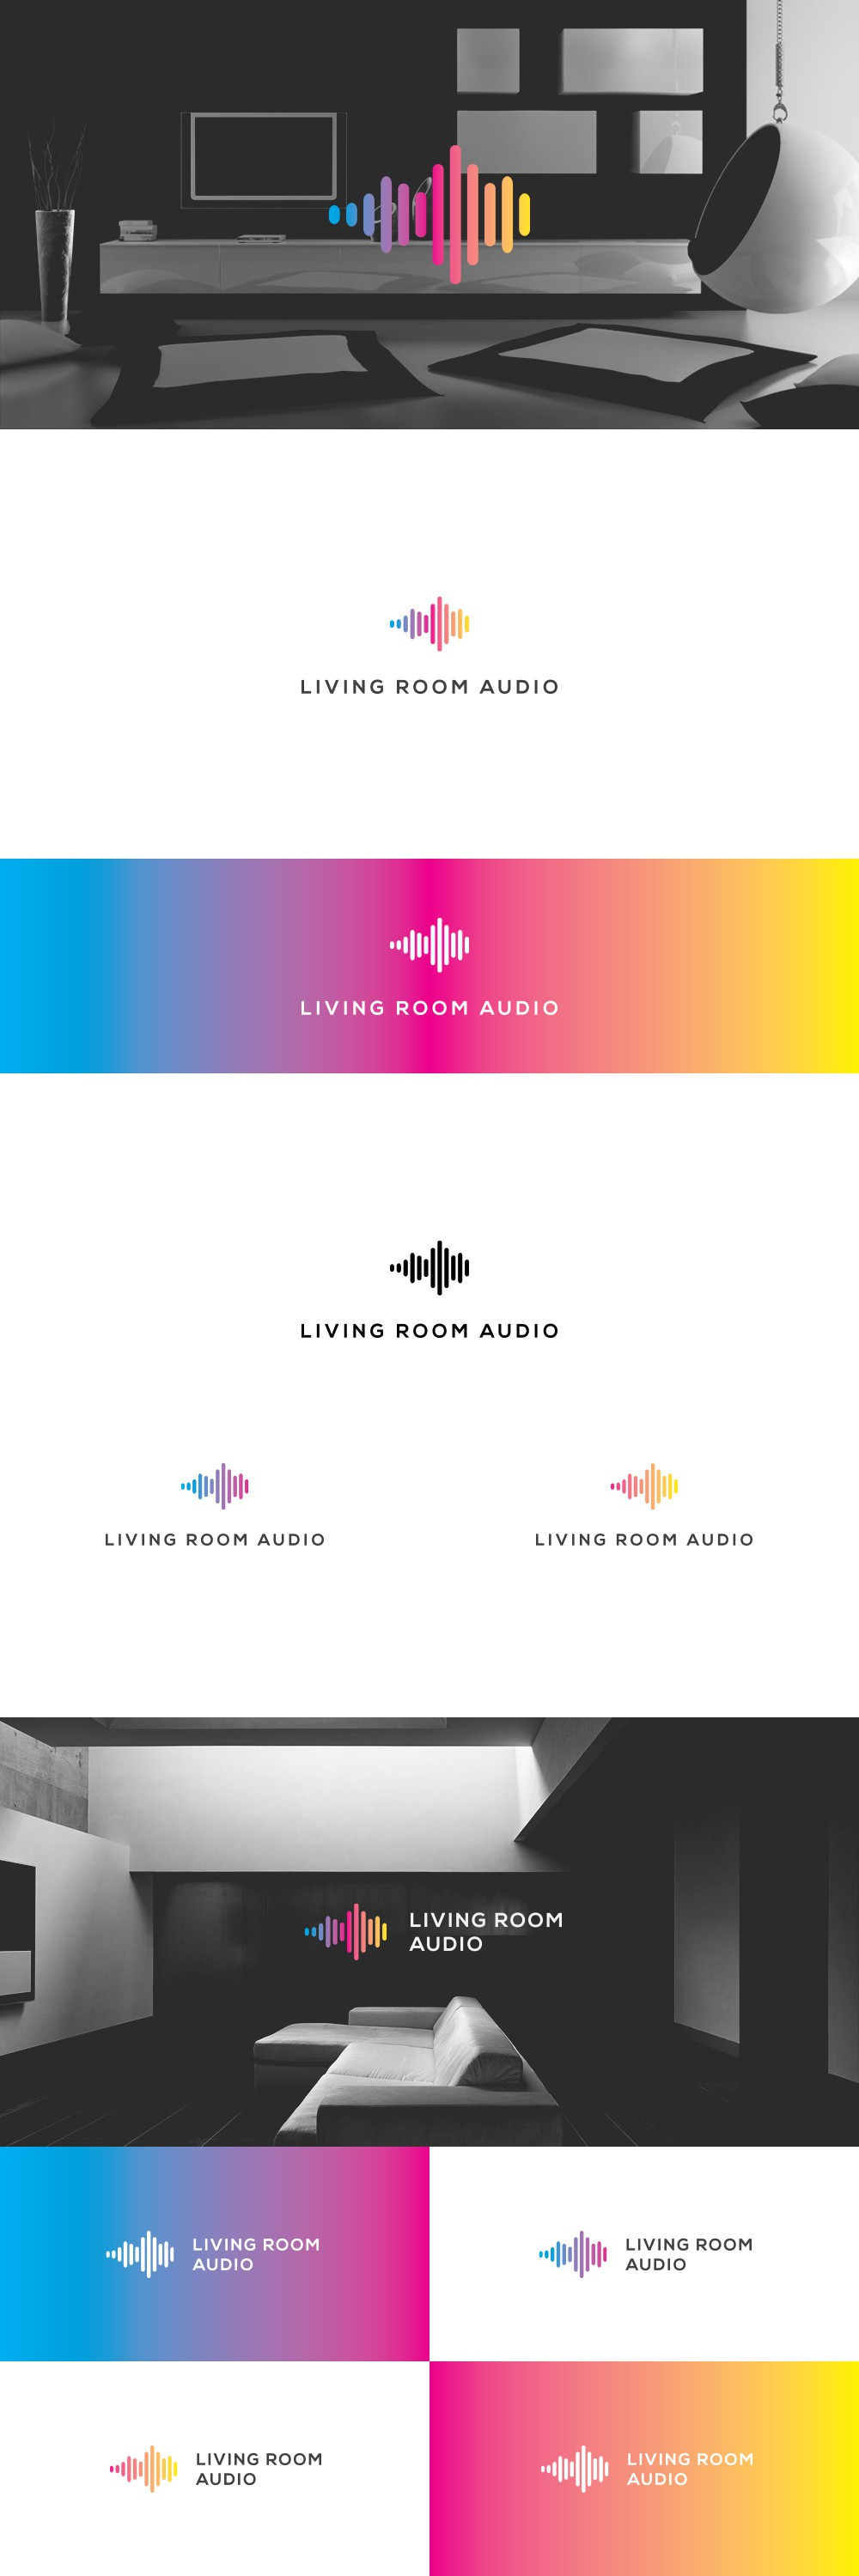 Design a new Logo for our High End Audio Business